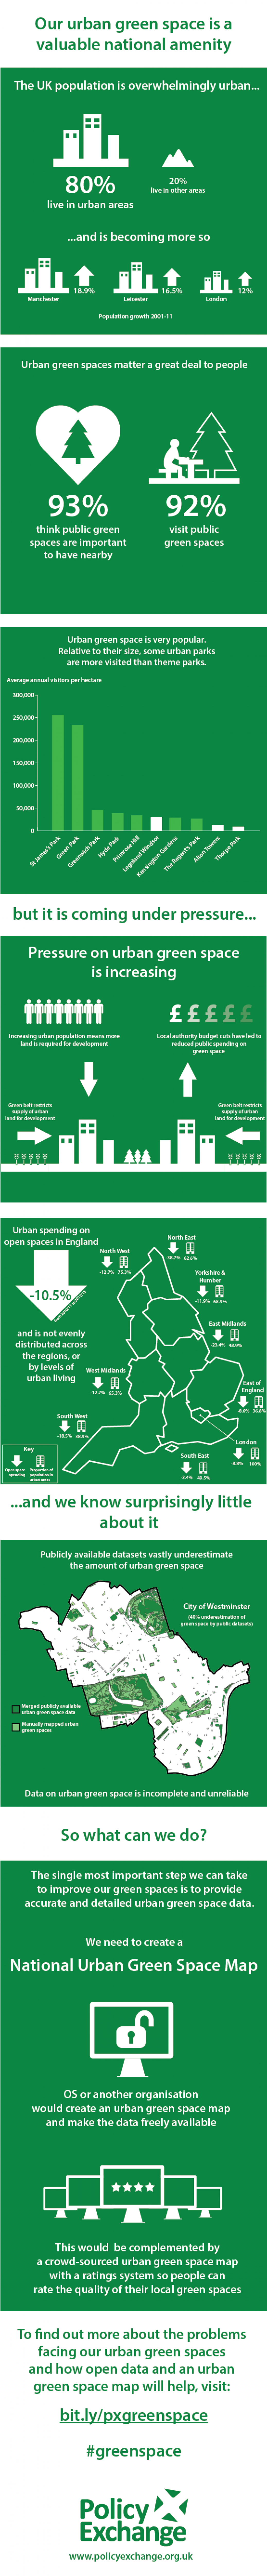 Park Land: How open data can improve our urban green spaces  Infographic